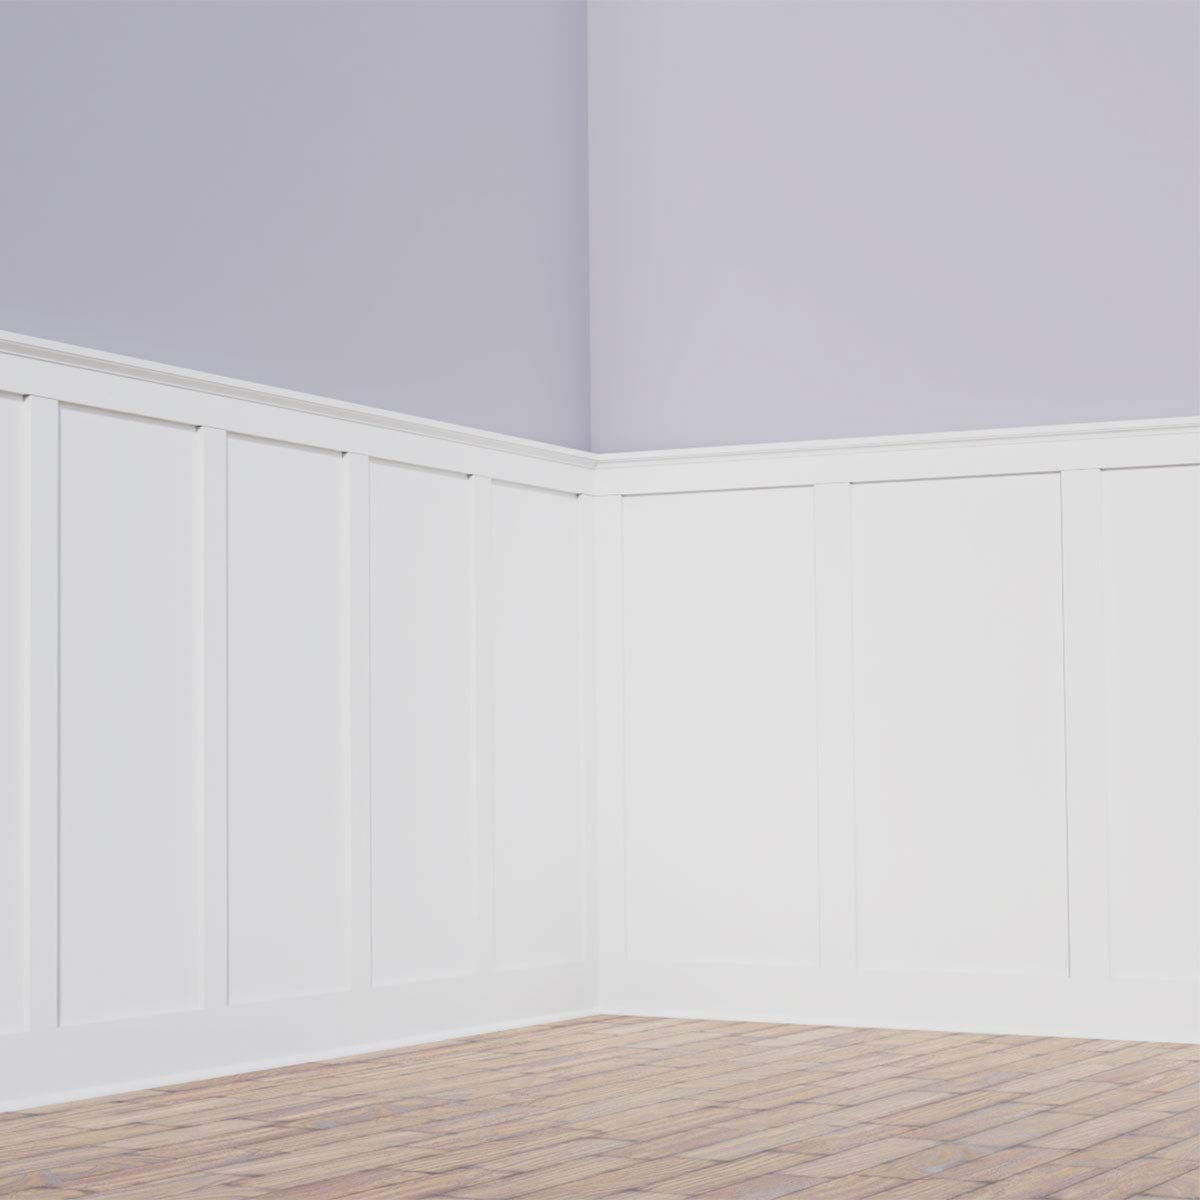 Ekena Millwork WPKP56X03DS Adjustable Wall Panels, Deluxe Shaker 8' PVC Wainscoting Kit, Heights up to 56'' (20''), Factory Primed White by Ekena Millwork